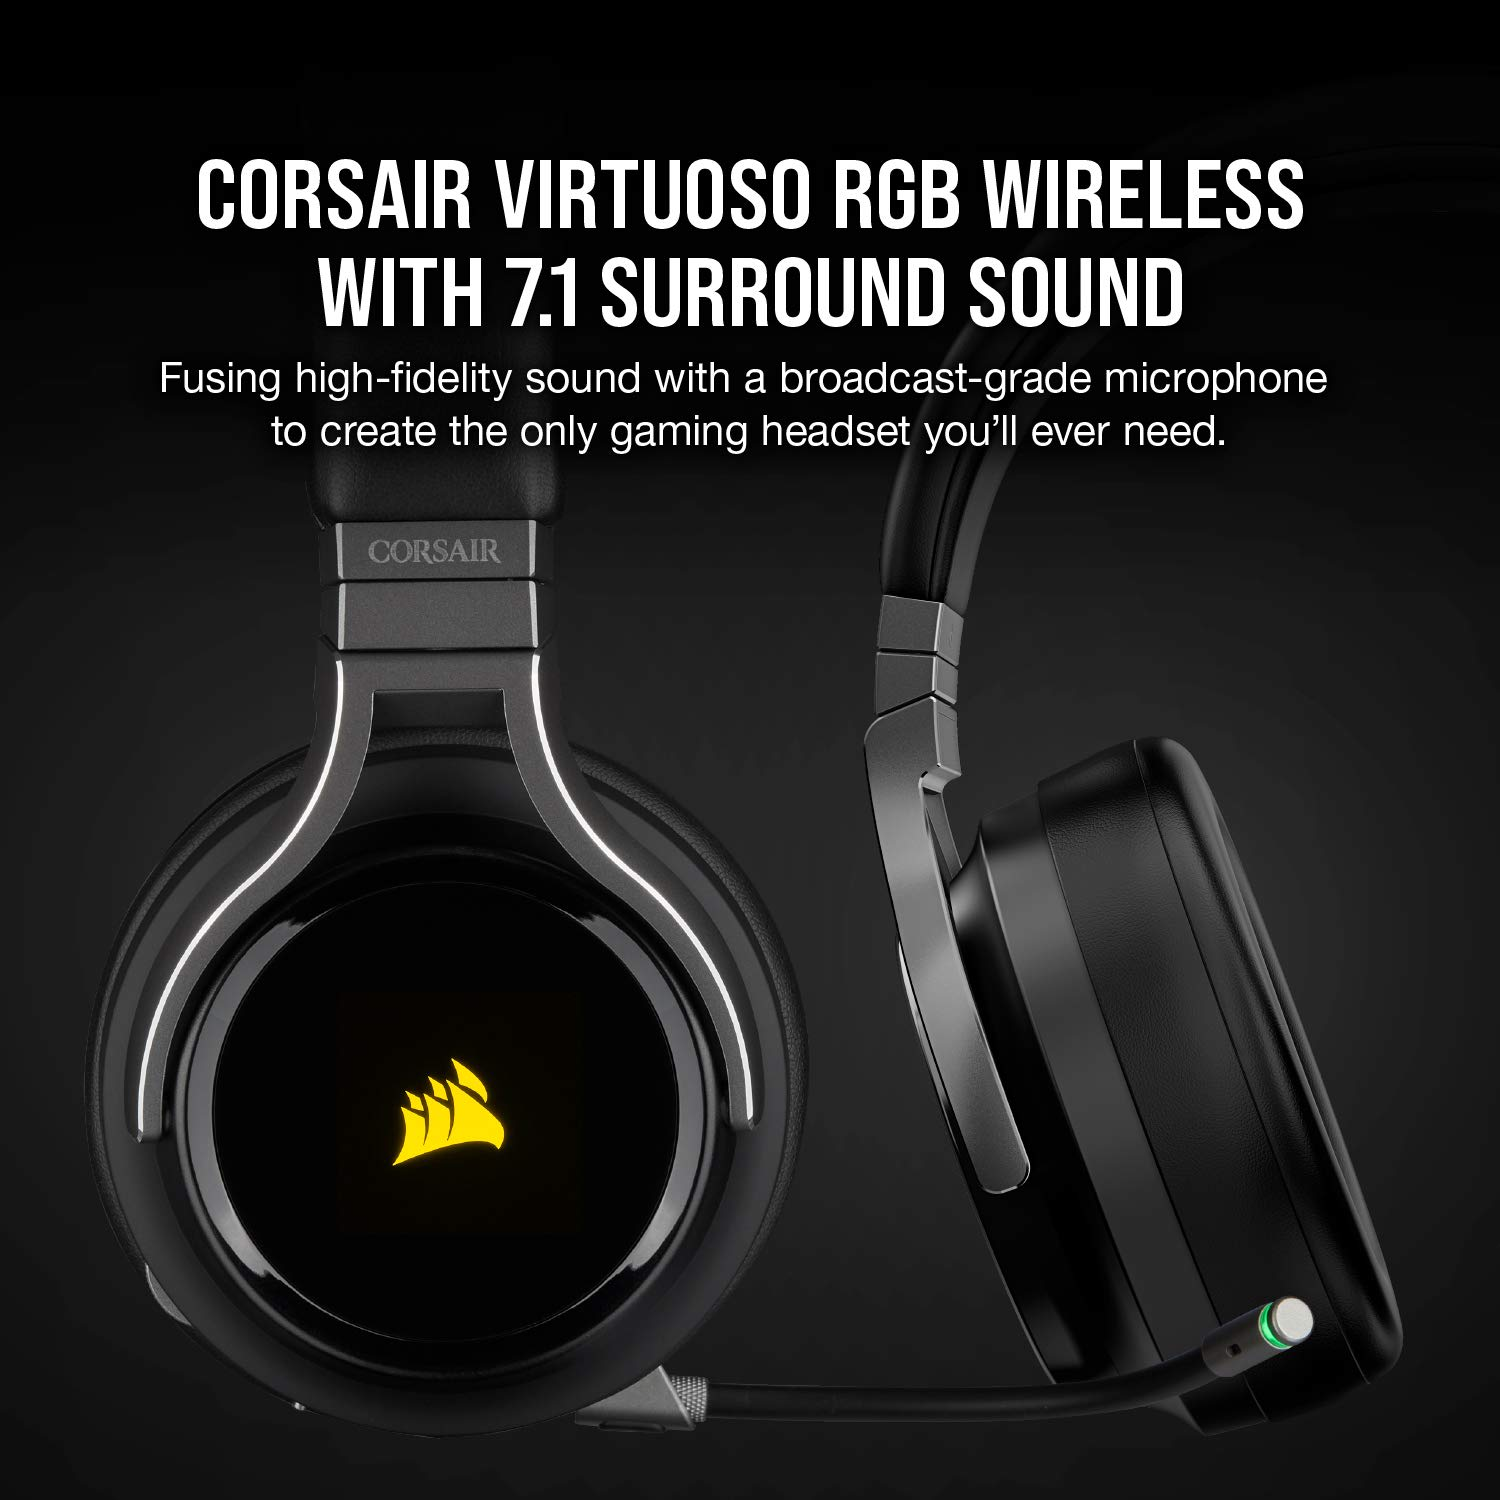 Corsair Virtuoso RGB Wireless Gaming Headset Review! 4